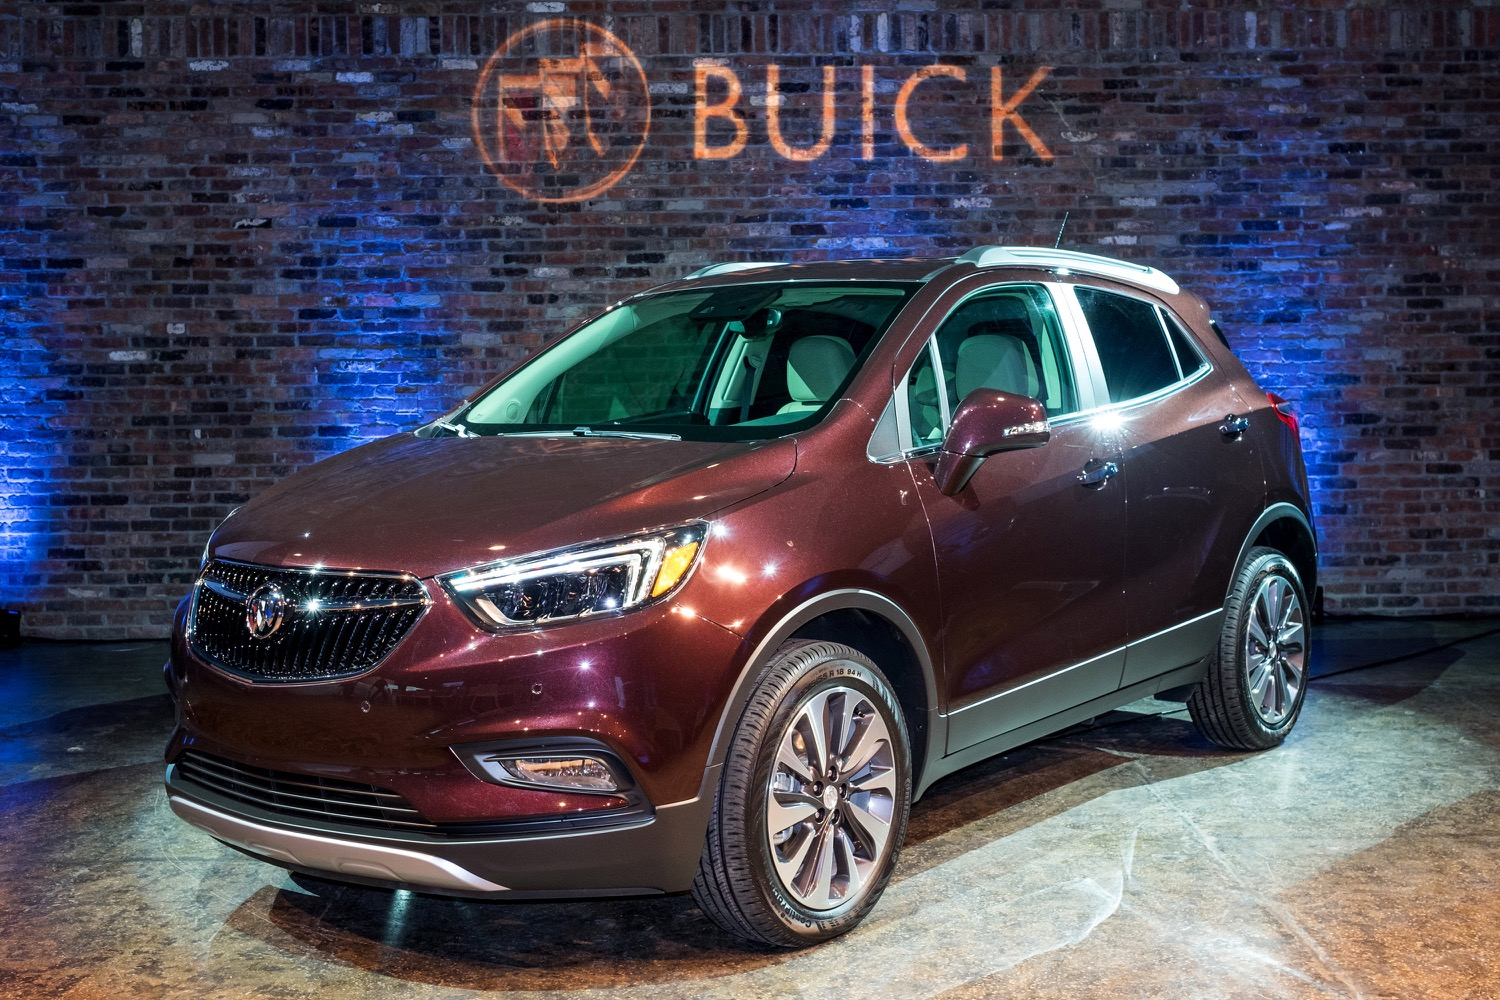 2018 Buick Encore Colors | Gm Authority New 2022 Buick Encore Colors, Interior, Awd